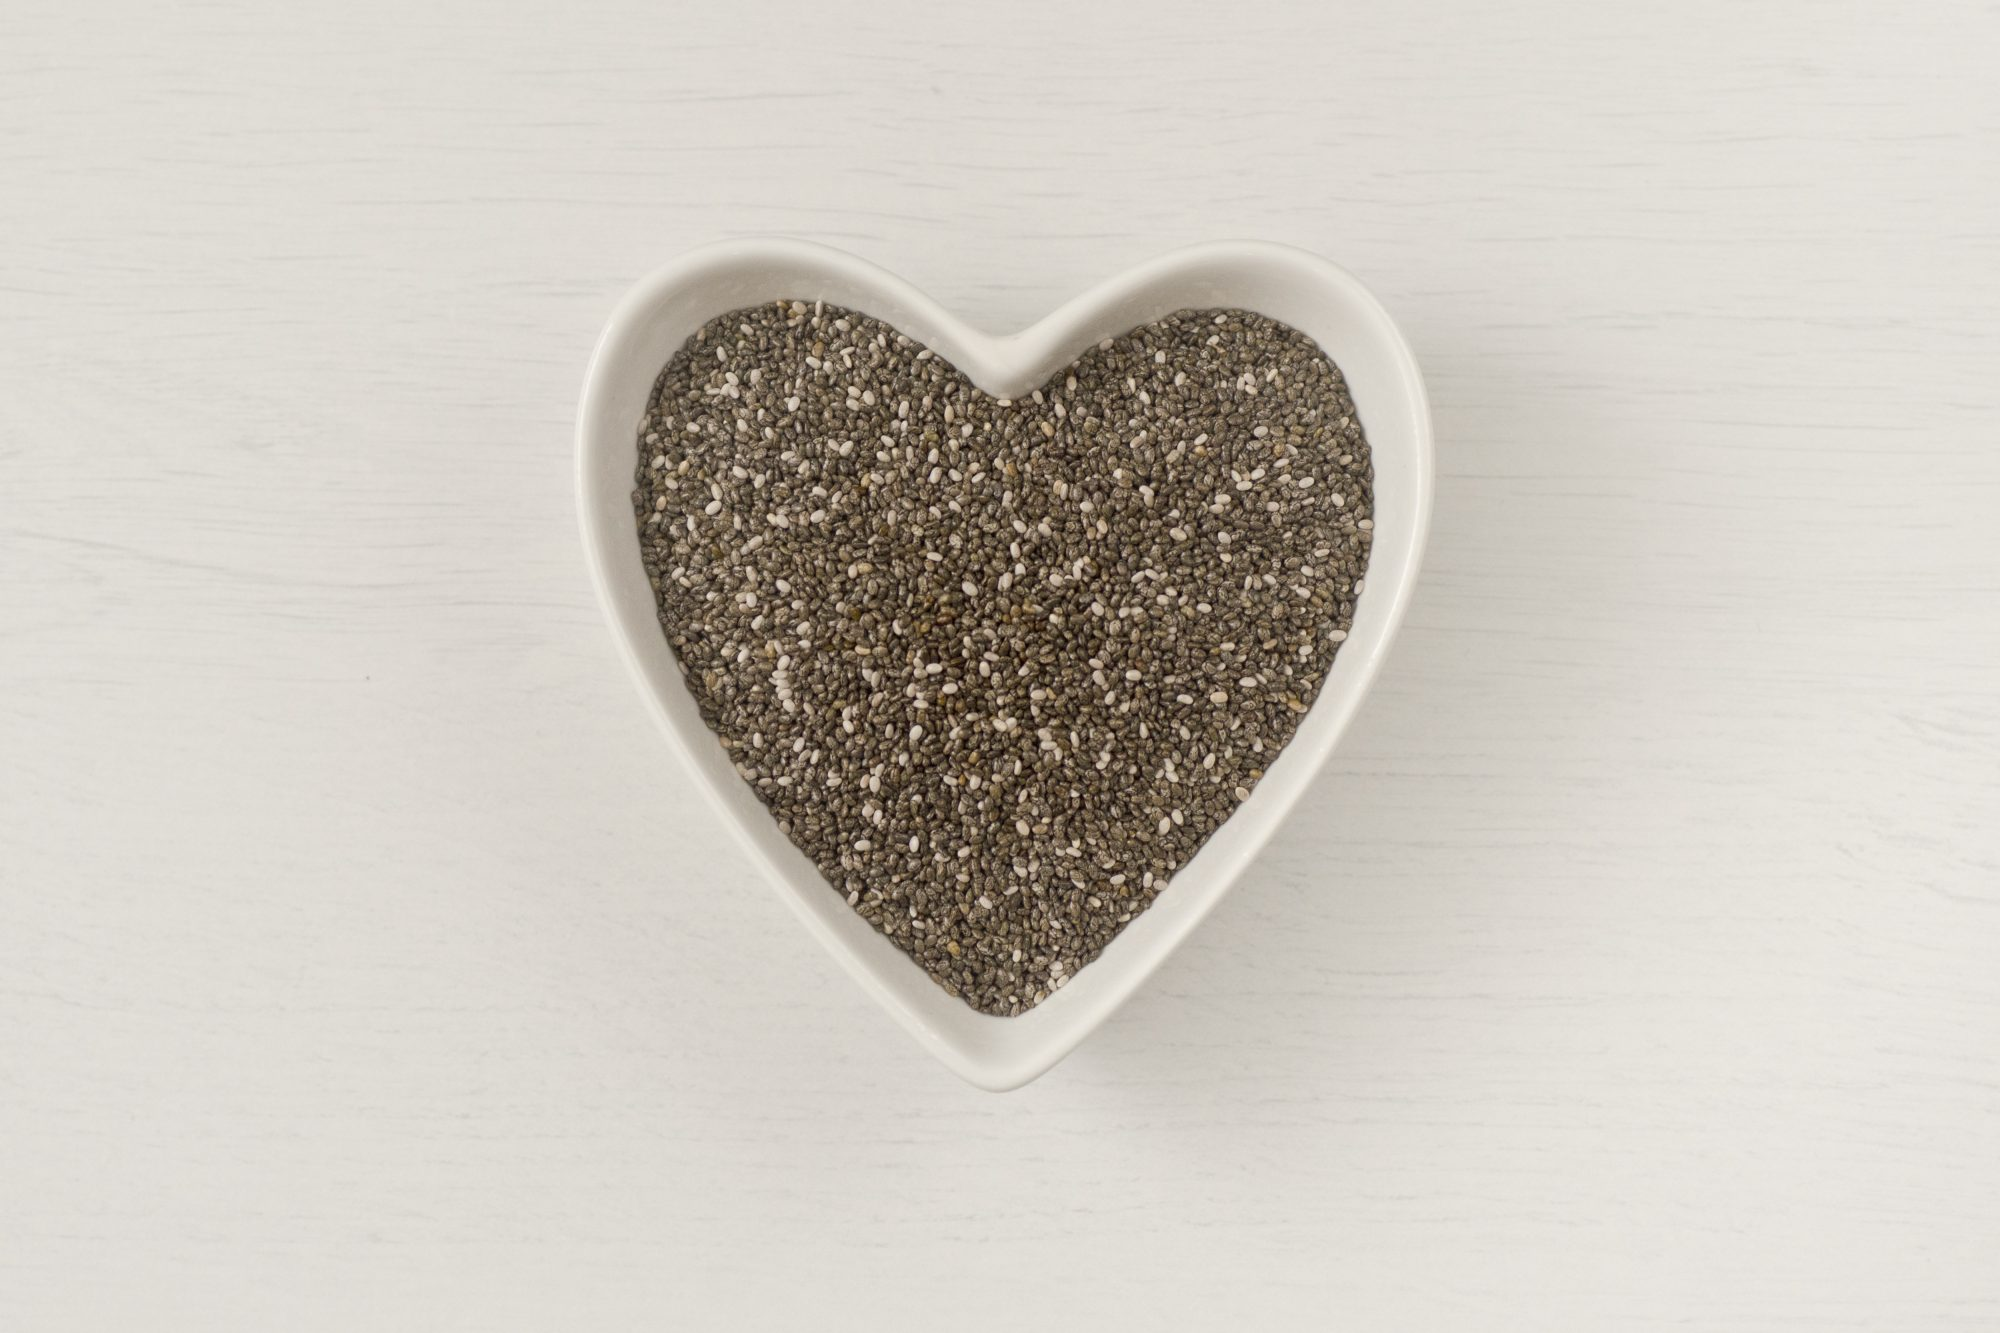 What Are Chia Seeds and How Do You Eat Them?